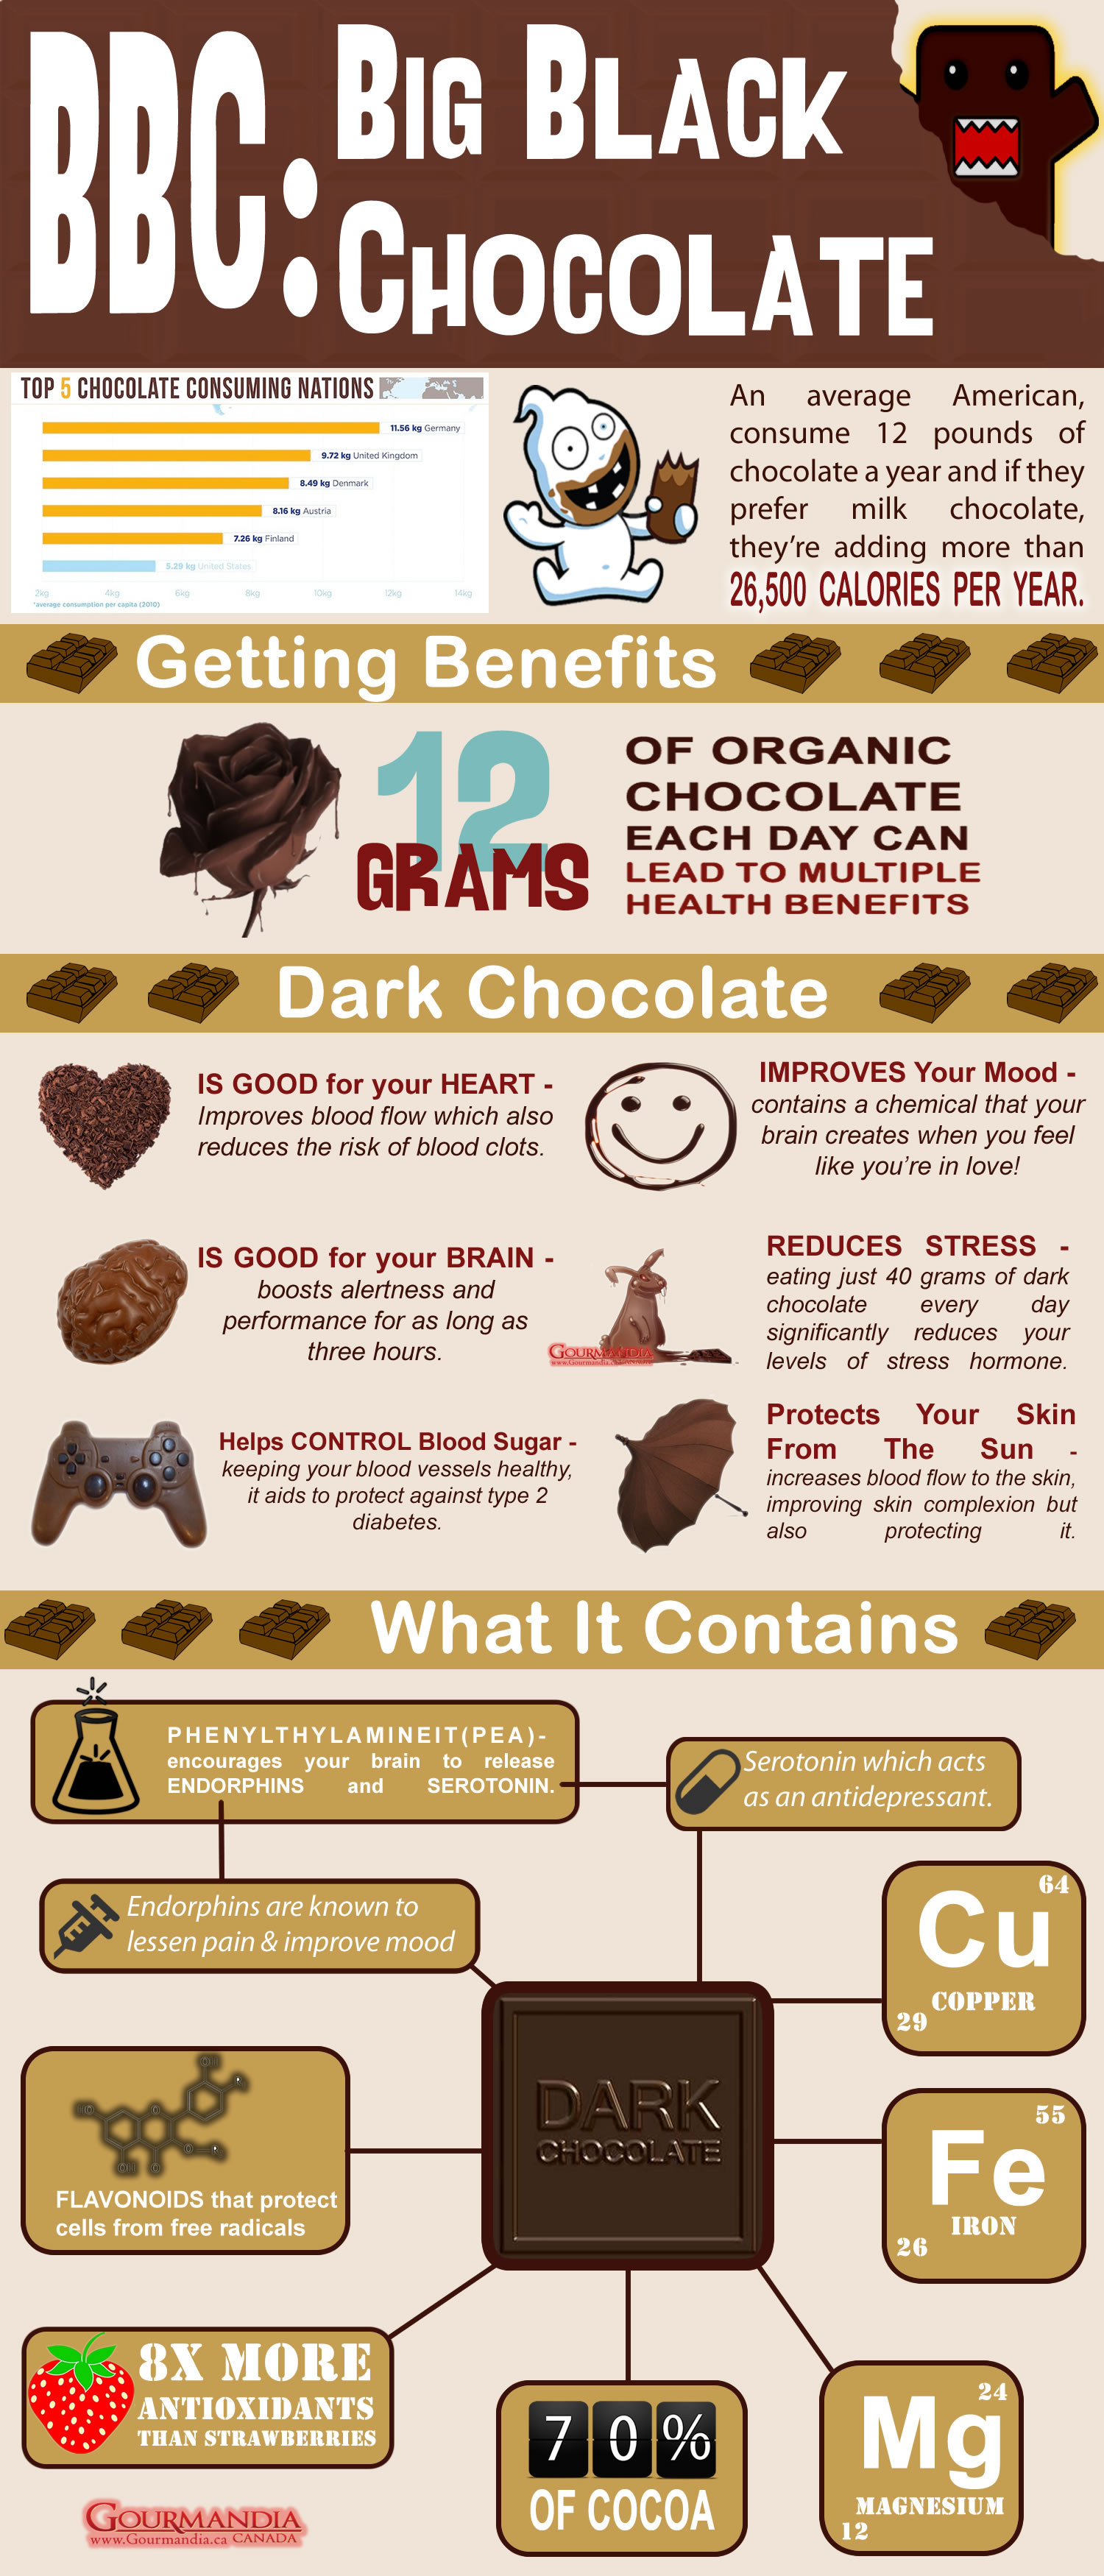 BBC Big Black Chocolate Infographic